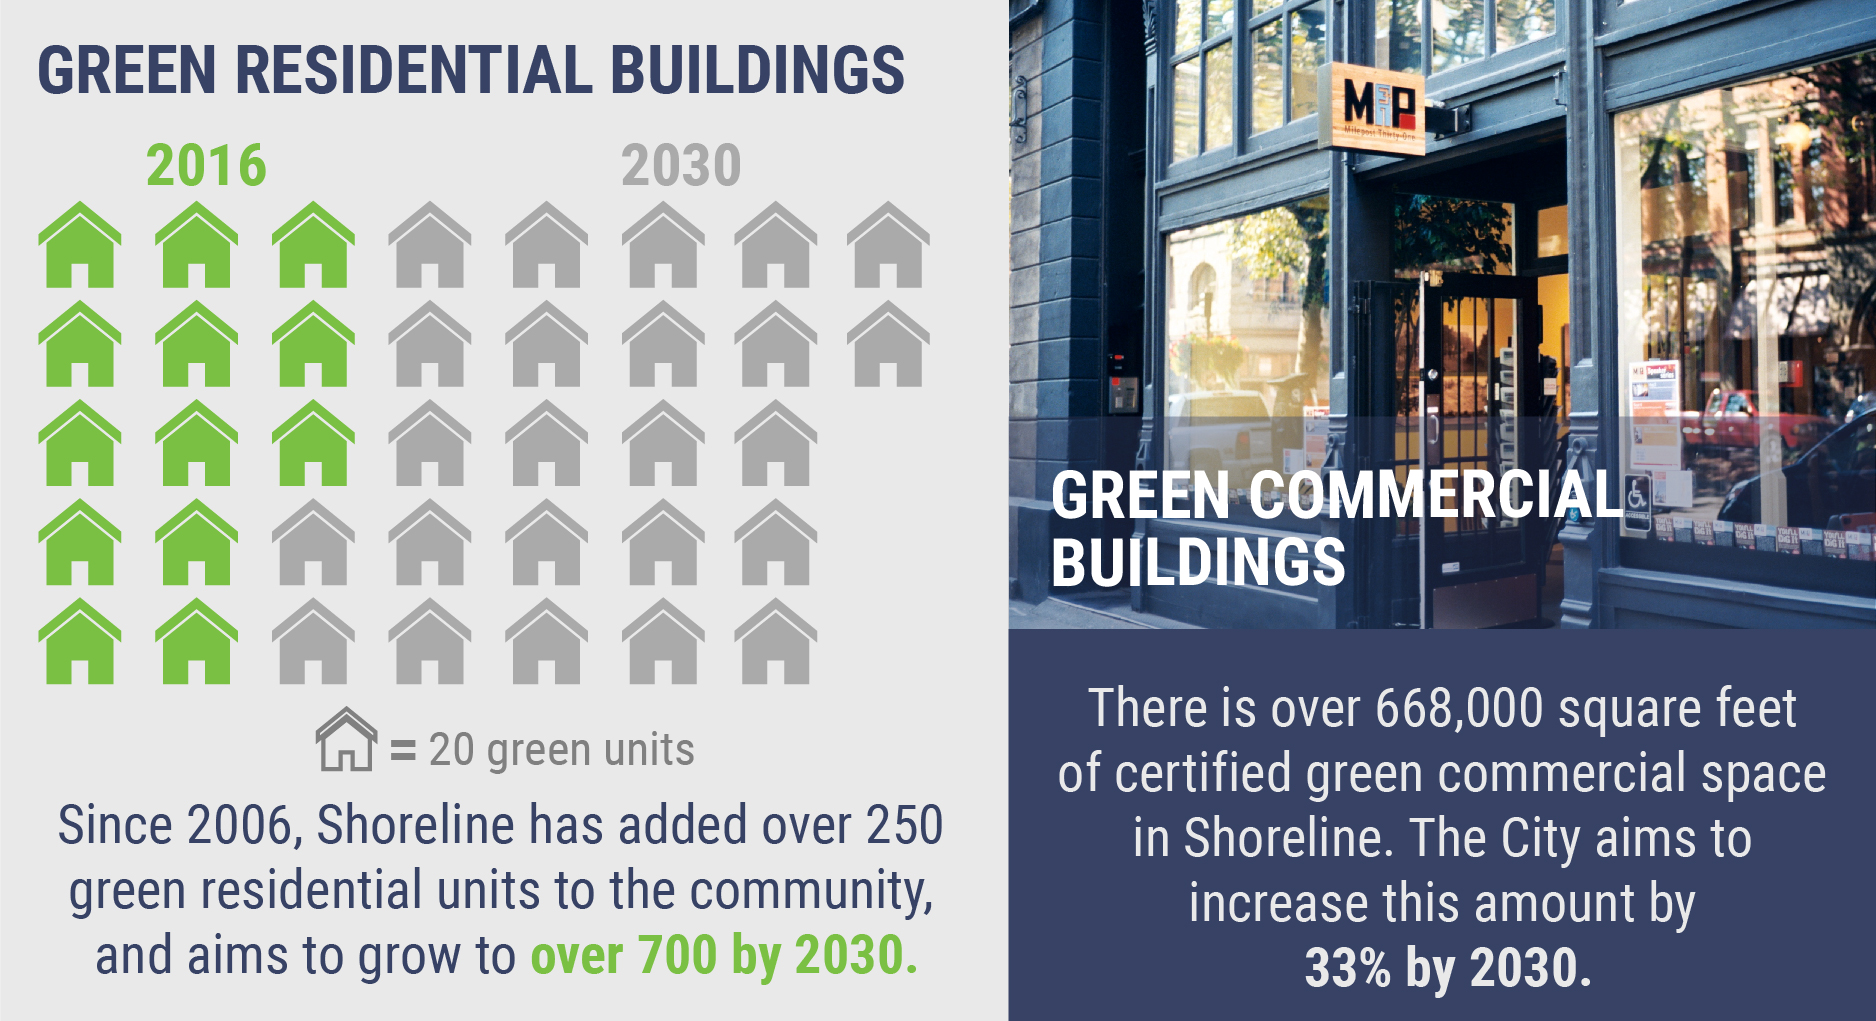 Infographic showing 250 green residential units being built in the community since 2006 and a target of having over 700 built by 2030. Also show City's target of increasing the square footage of commercial space by 33% by 2030.